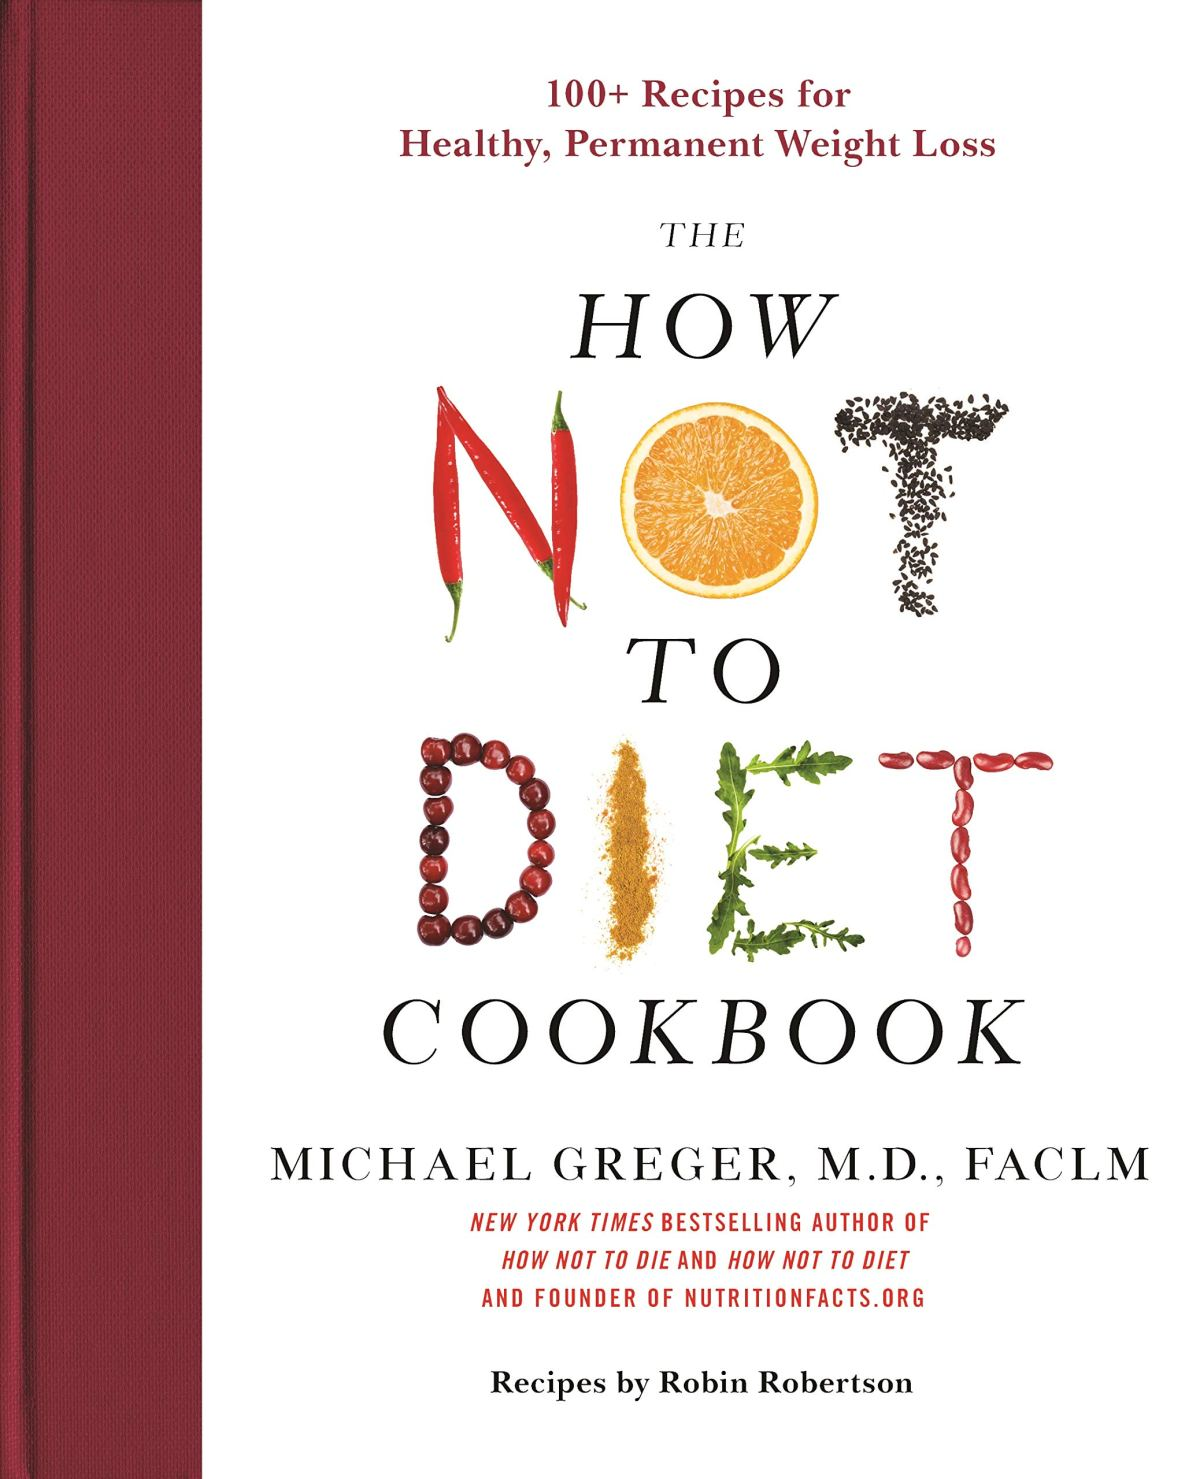 The How Not to Diet Cookbook: 100+ Recipes for Healthy, Permanent Weight Loss 1